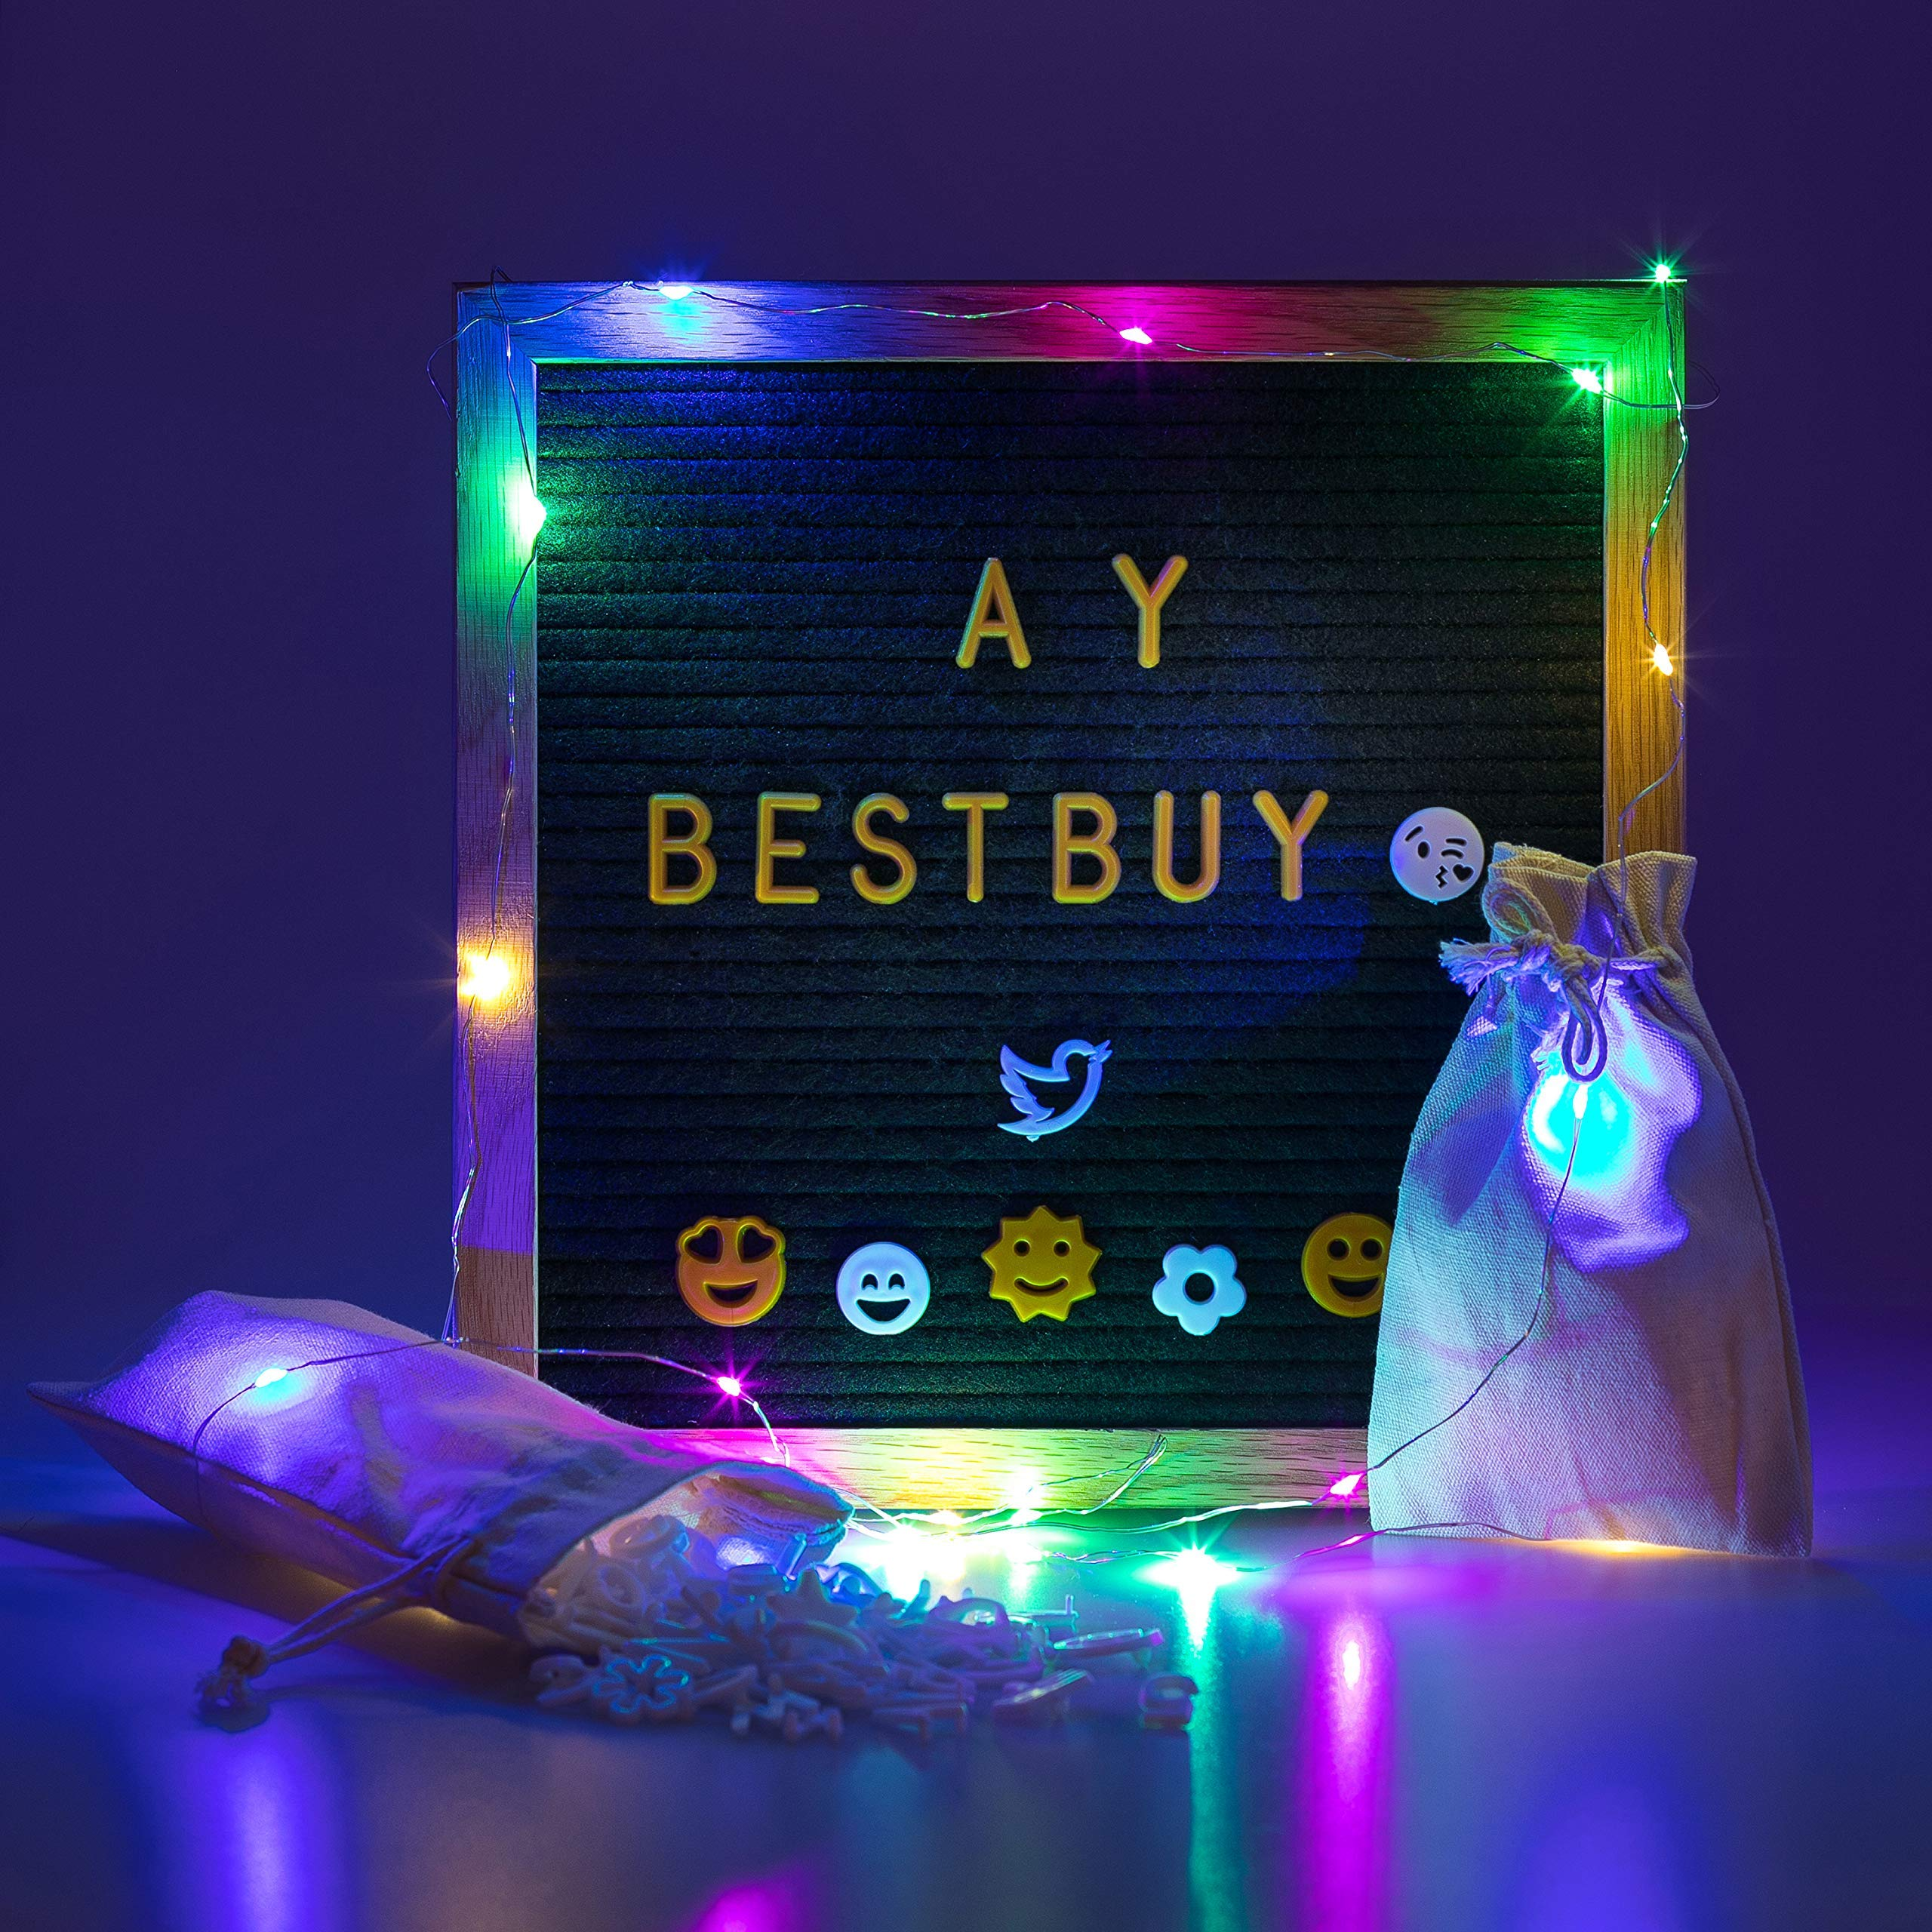 Letter Board 10x10 Inch – Black Felt Message Board with+500 White & Gold Letters, Emojis, Social Media Icons – Changeable Display Wall Decor + Free LED Balloon & Multicolor String Lights by AyBestbuy